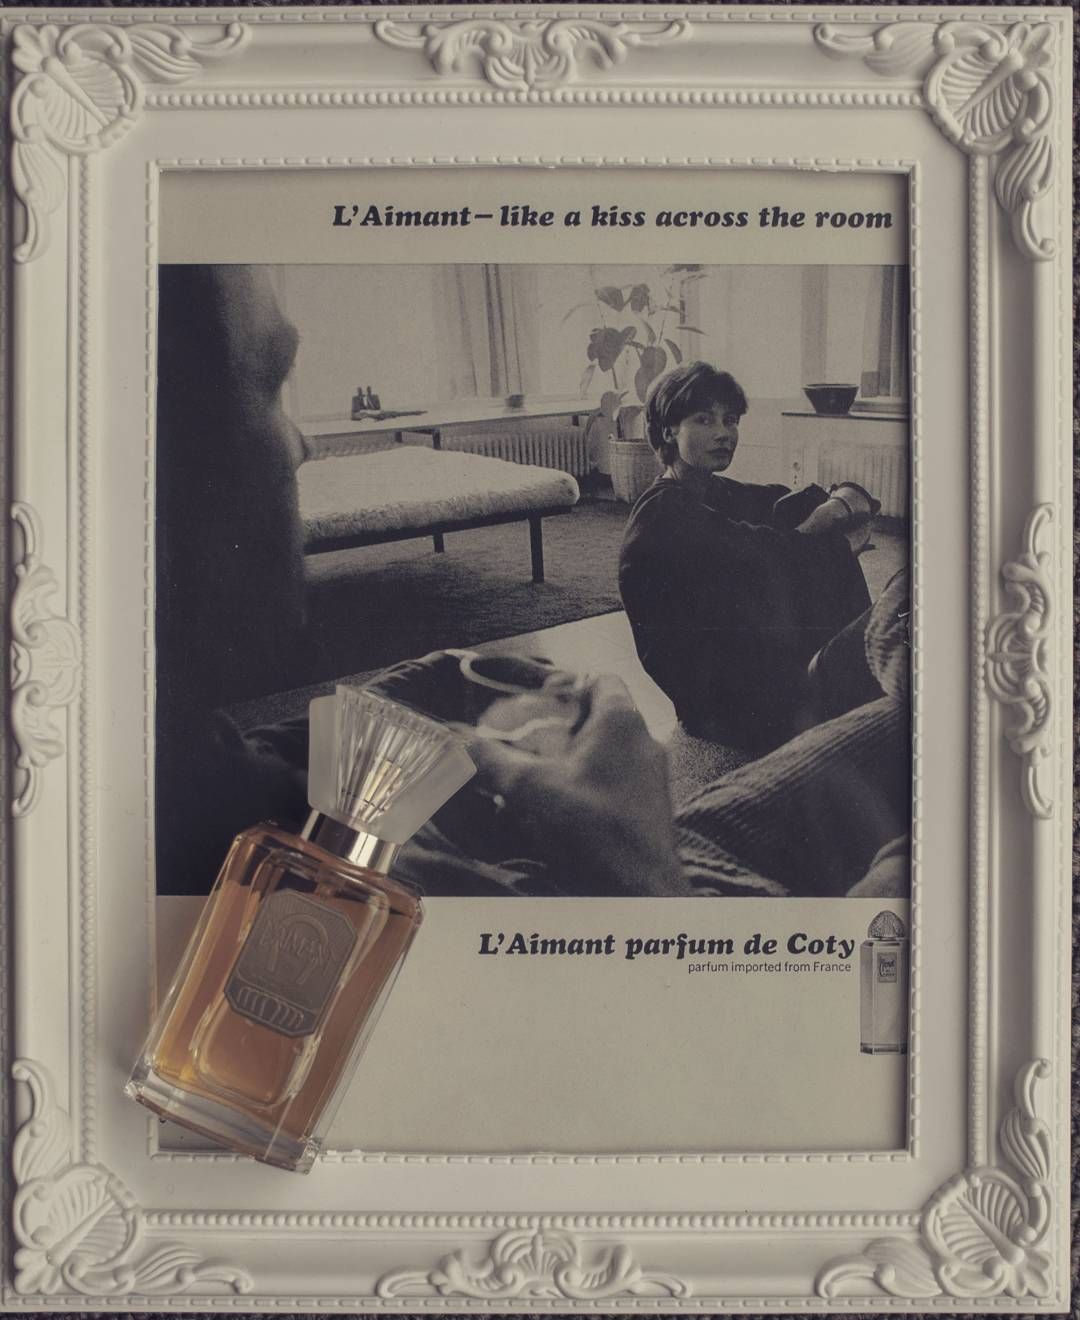 Coty L'Aimant: A Classic since 1927